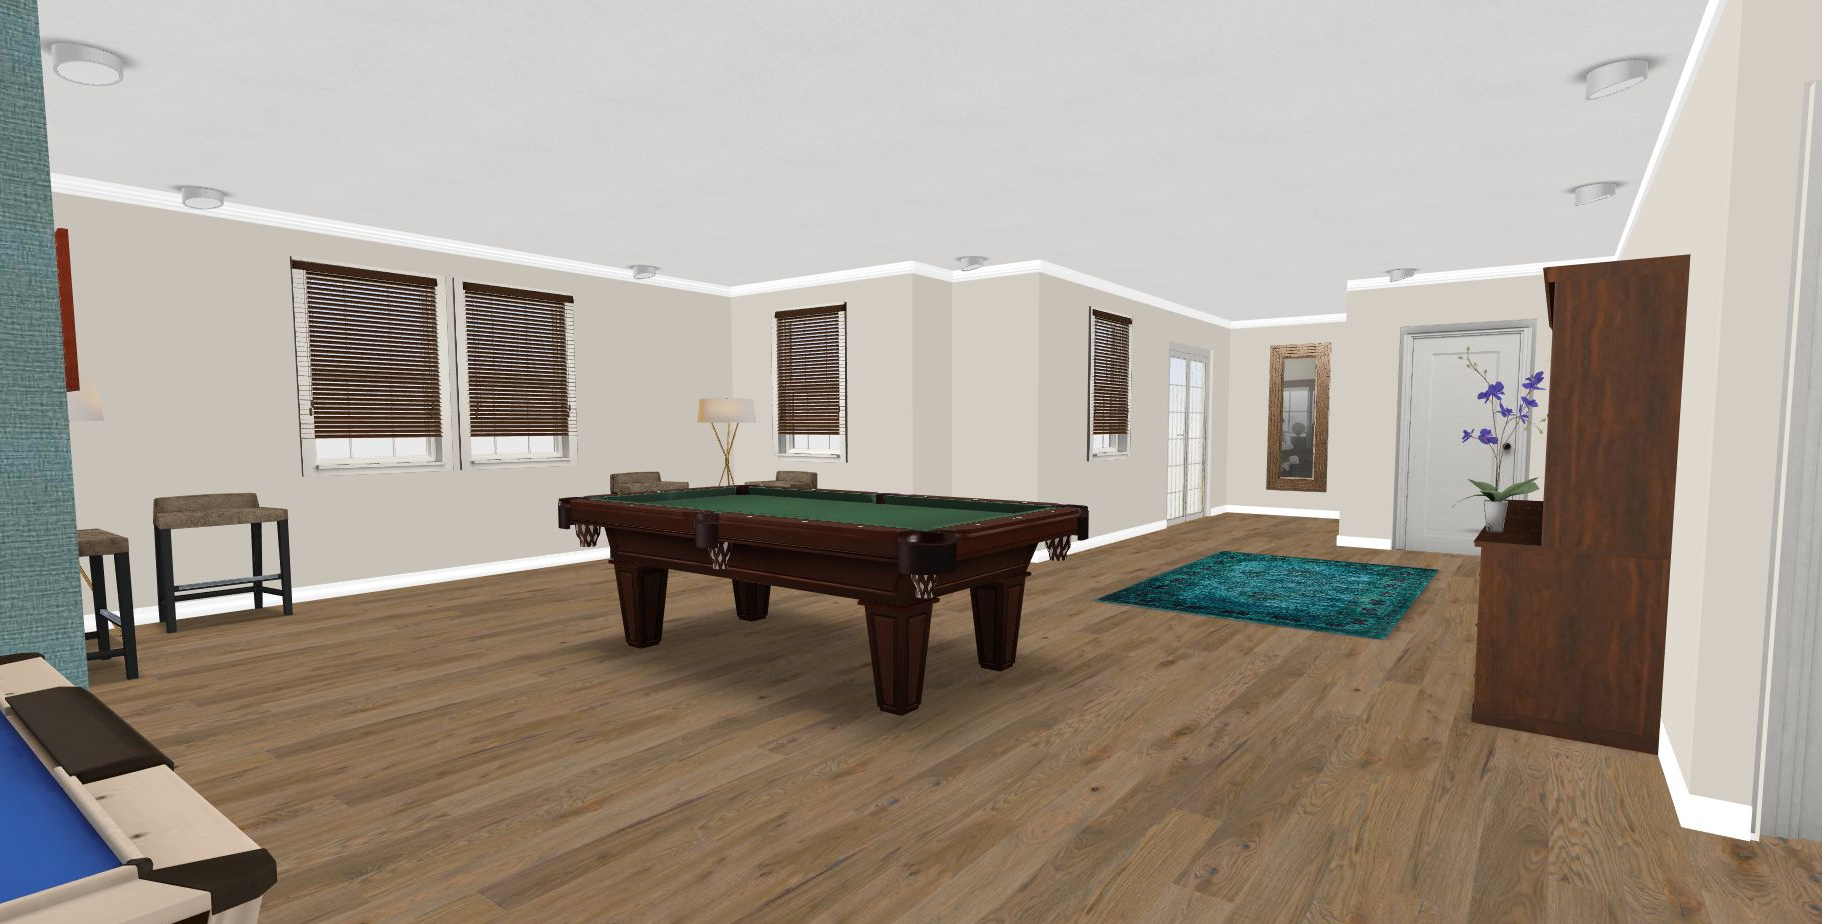 Kaoud Basement Interior Rendering - 4.png